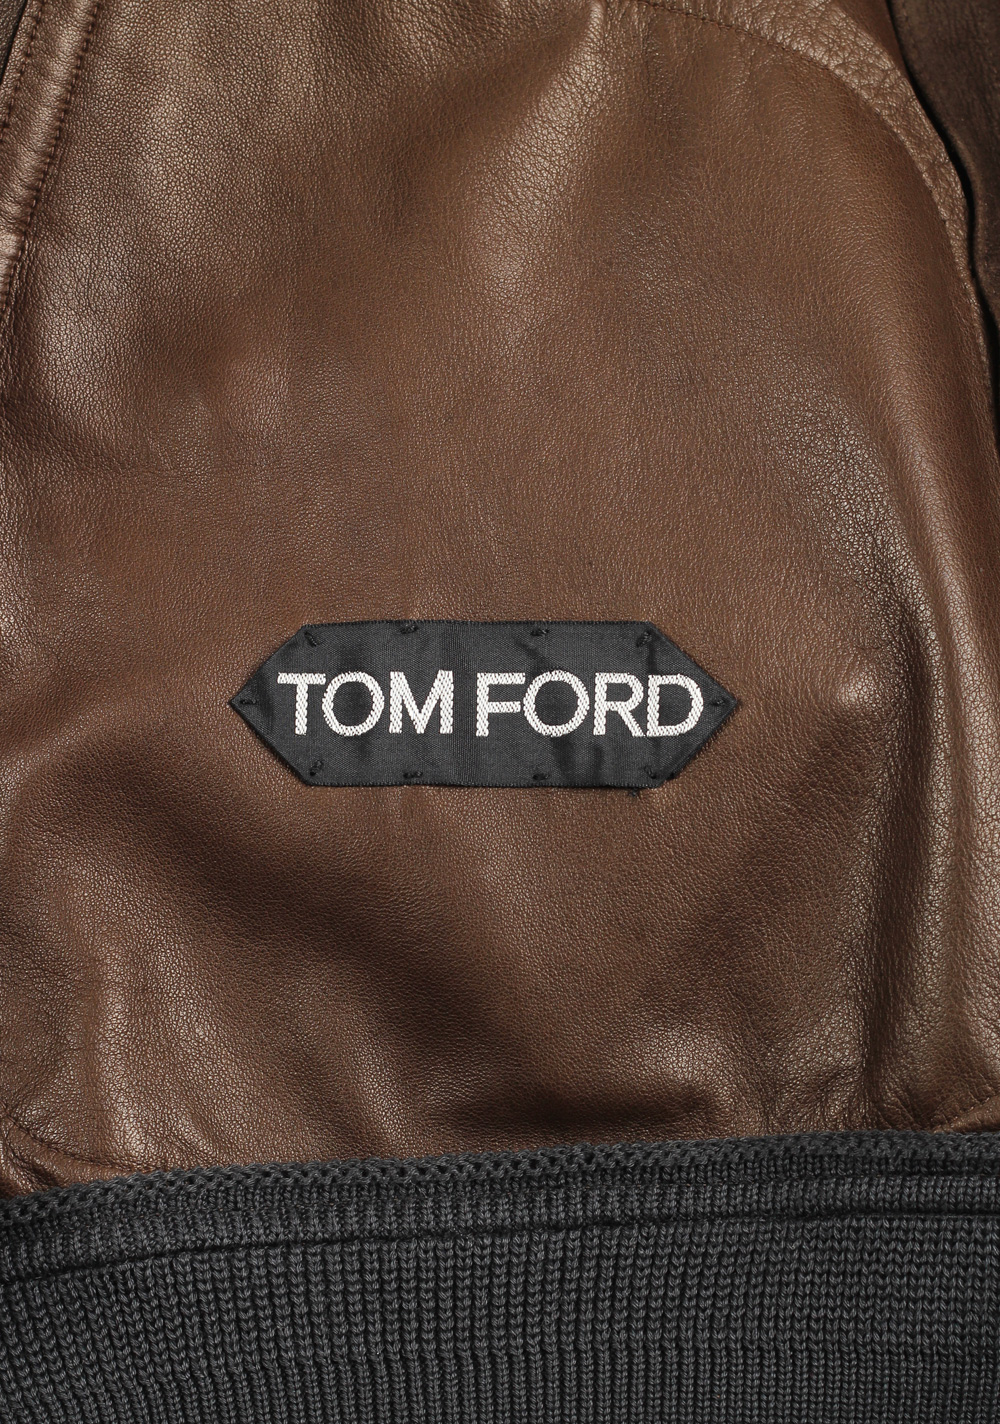 TOM FORD Brown Leather Suede Bomber Jacket Coat Size 48 / 38R U.S.   Costume Limité